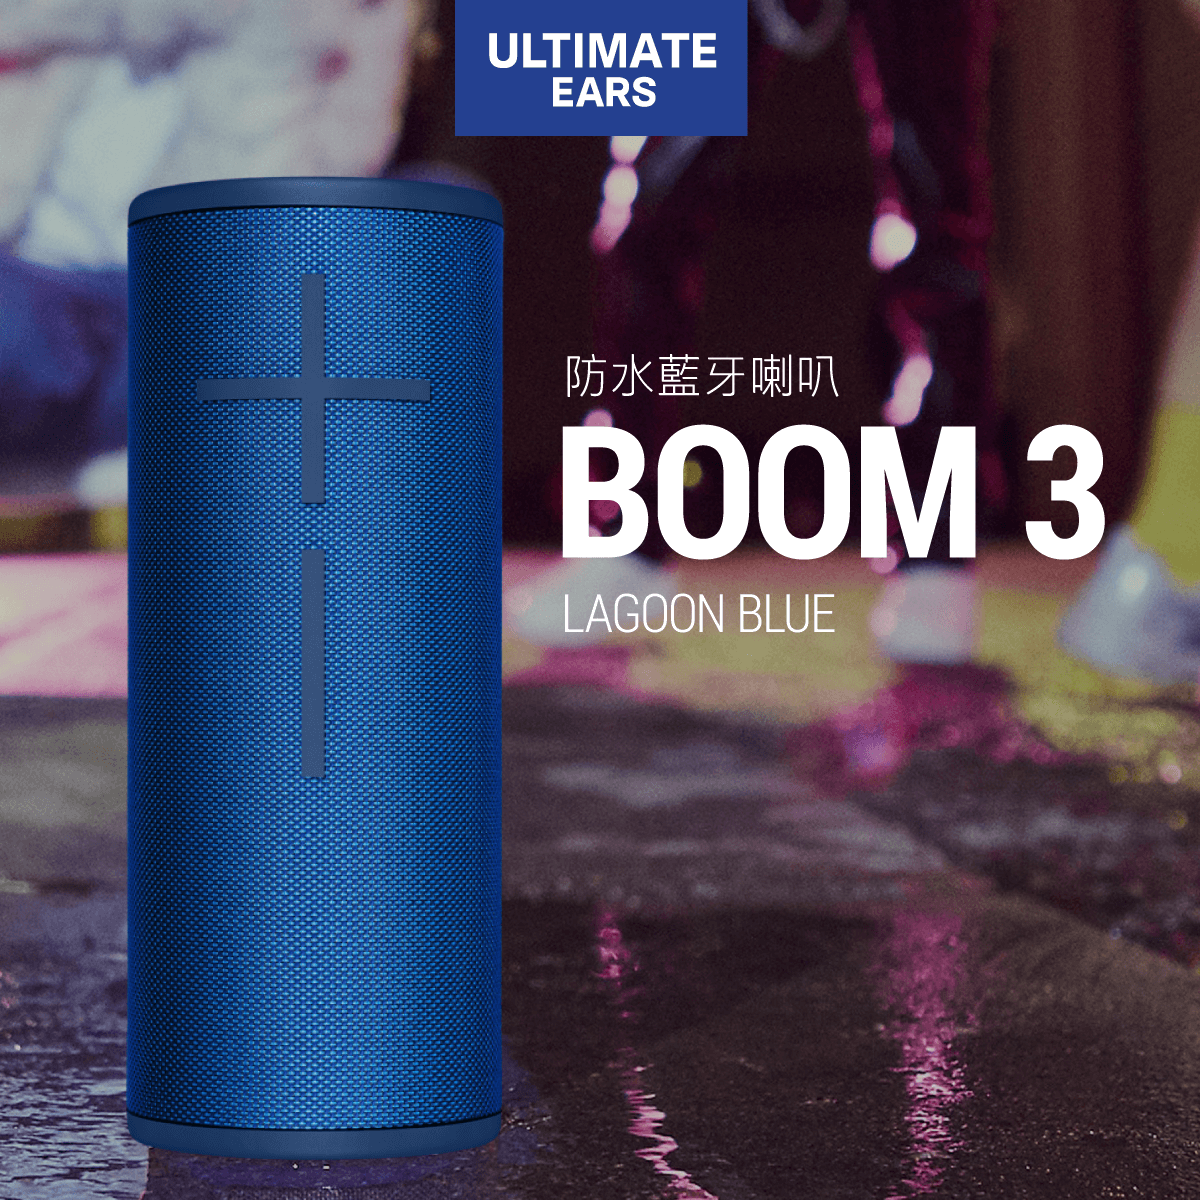 Ultimate Ears Boom 3 - Lagoon Blue